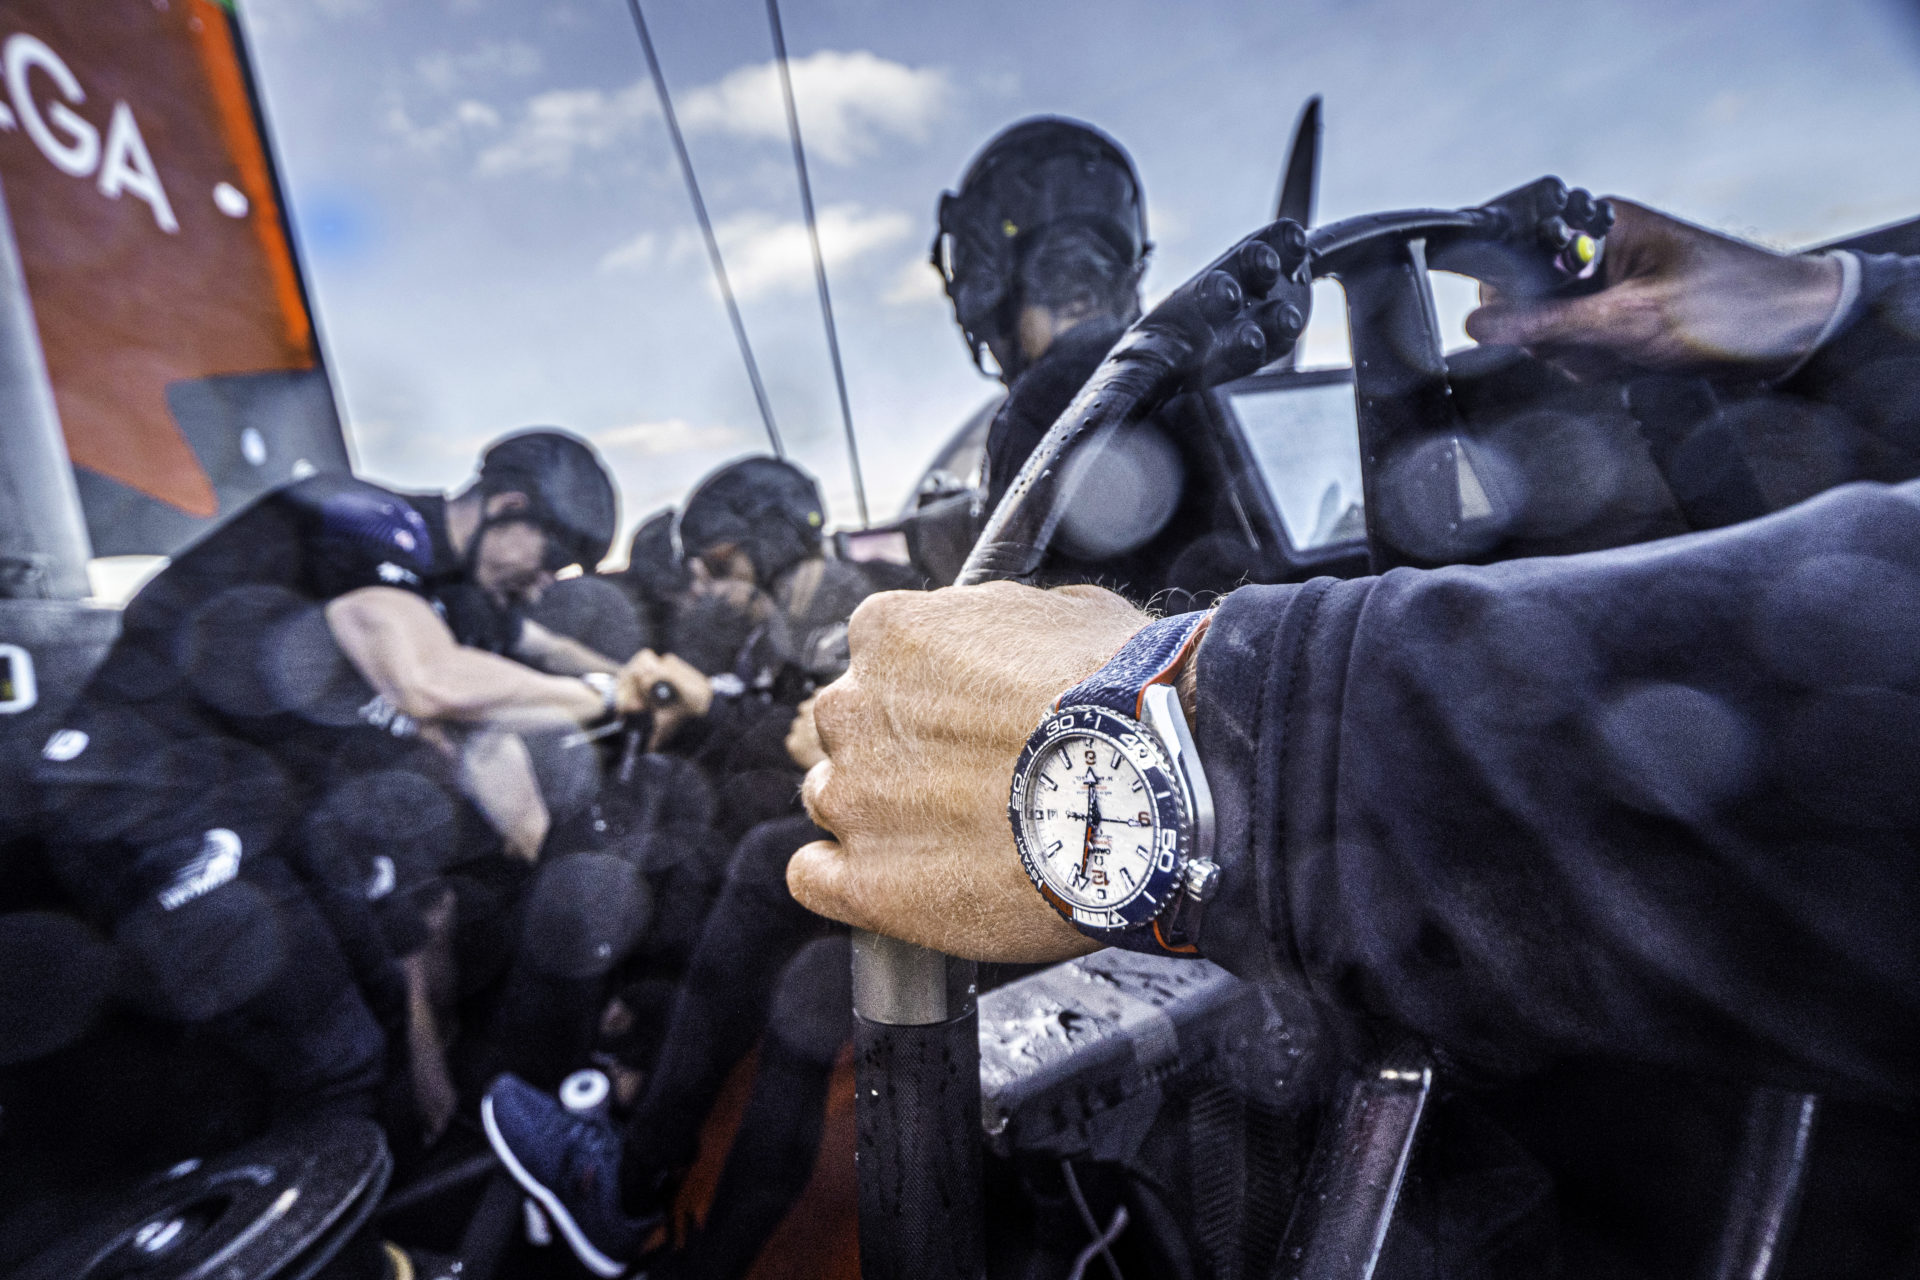 Emirates Team New Zealand's AC75 'Te Aihe' on the Waitemata Harbour in Auckland, New Zealand36th America's Cup